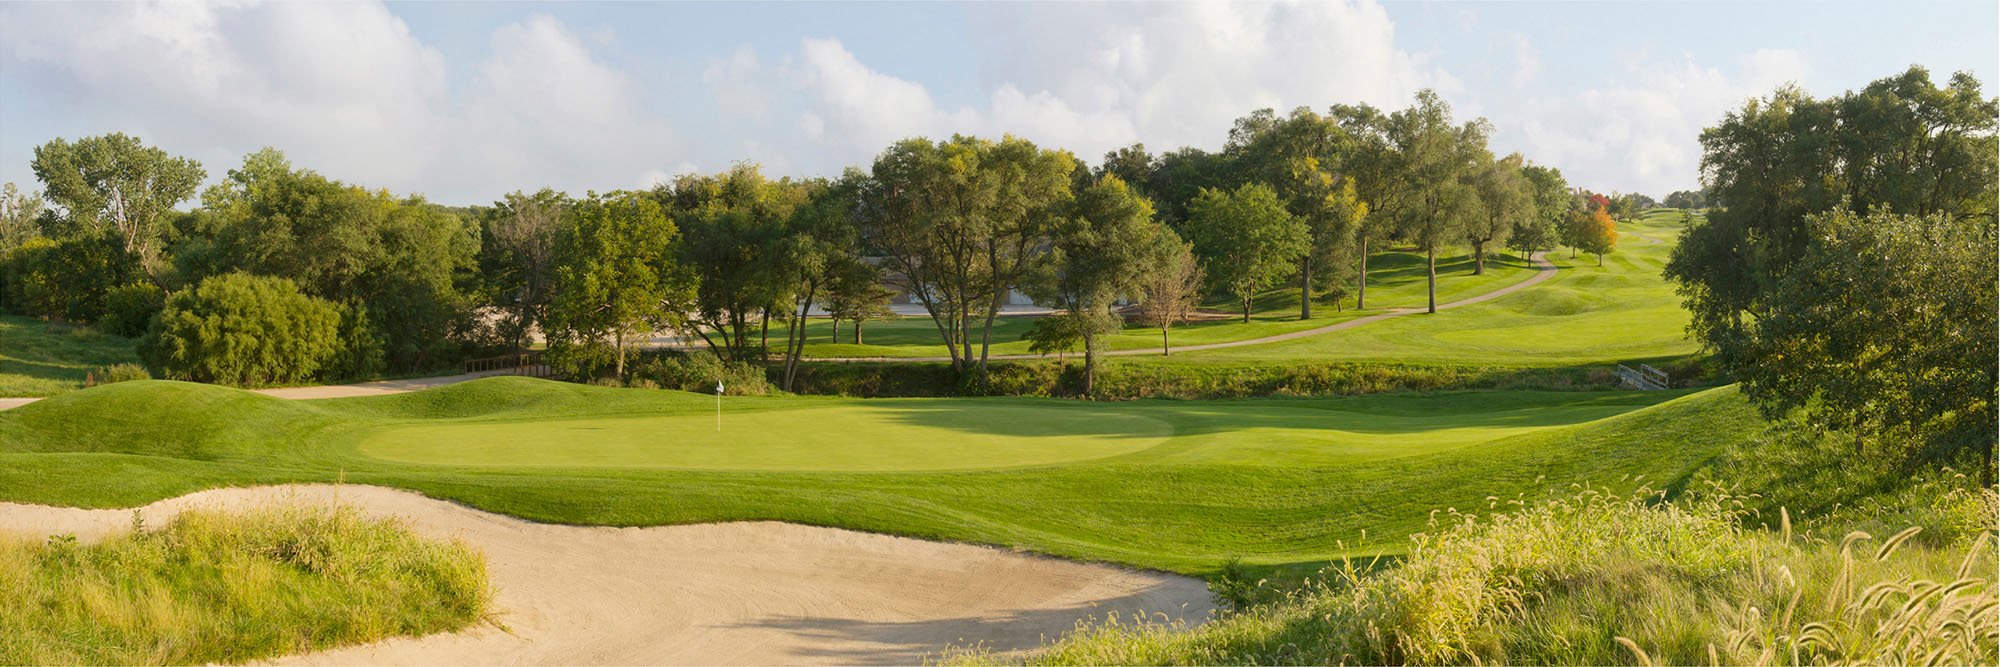 Golf Course Image - Champions No. 1